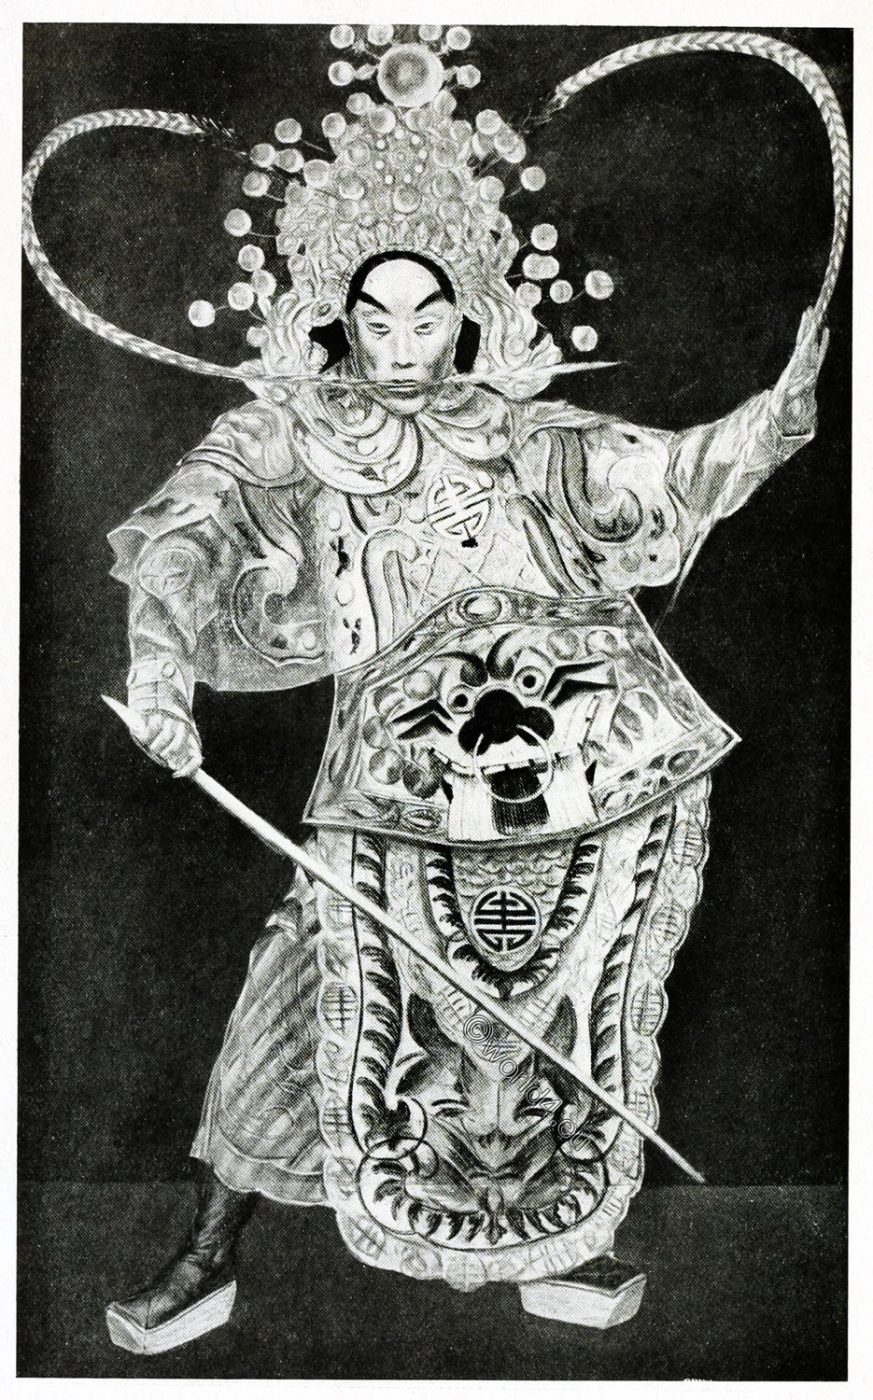 Chinese, Theatre, warrior, Opera, Alexandre Iacovleff